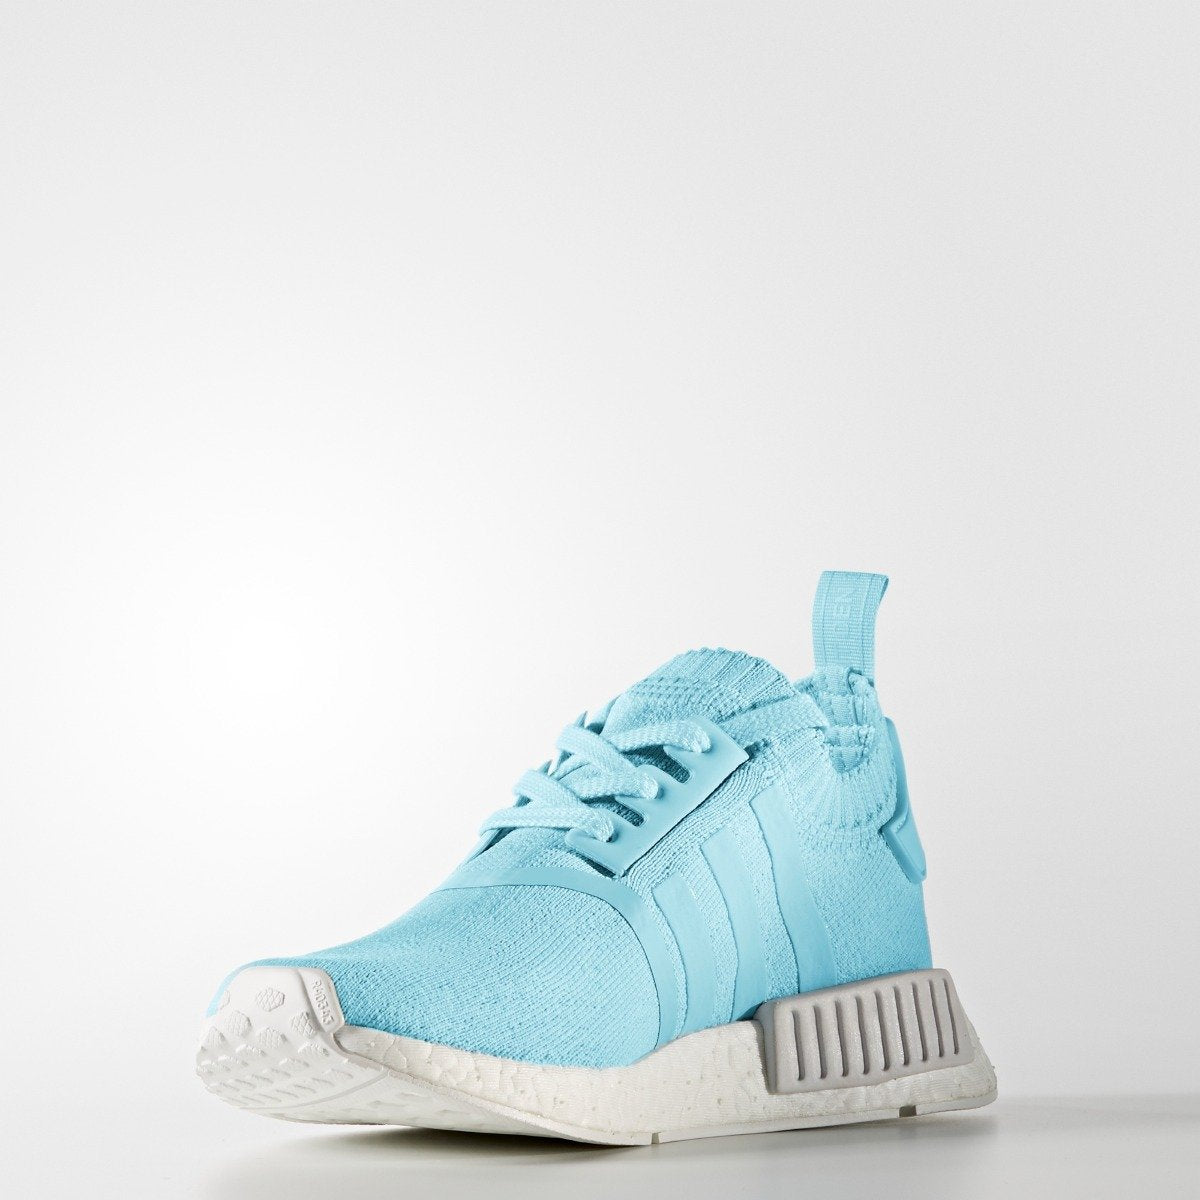 f04886609 Women s adidas Originals NMD R1 Primeknit Shoes Ice Blue with White. 1  2   3  4  5  6  7  8